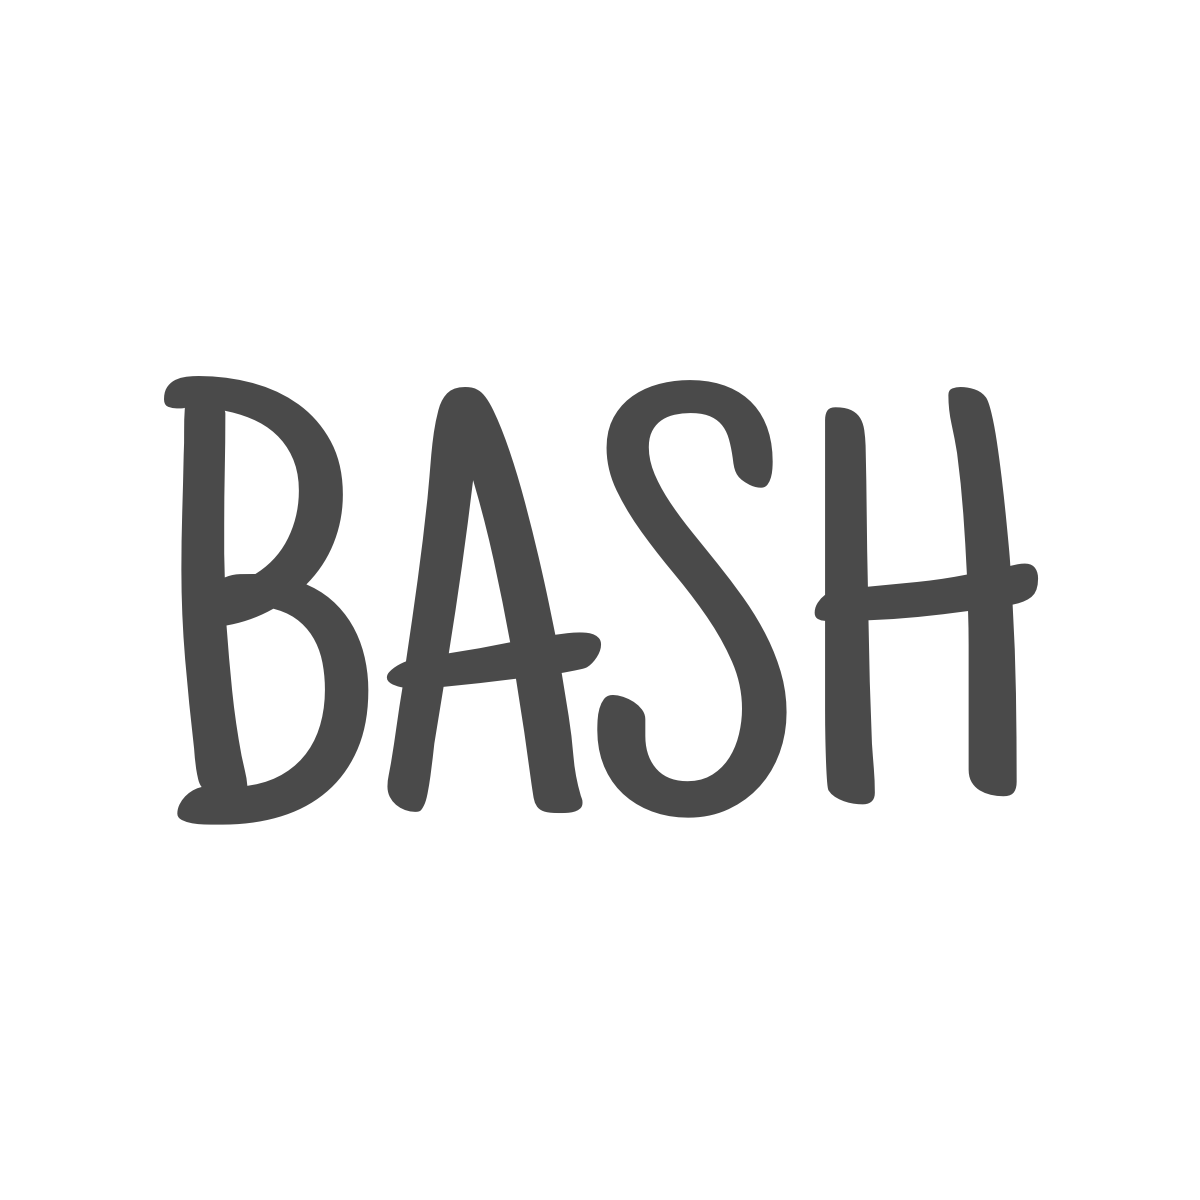 Bash Substitution